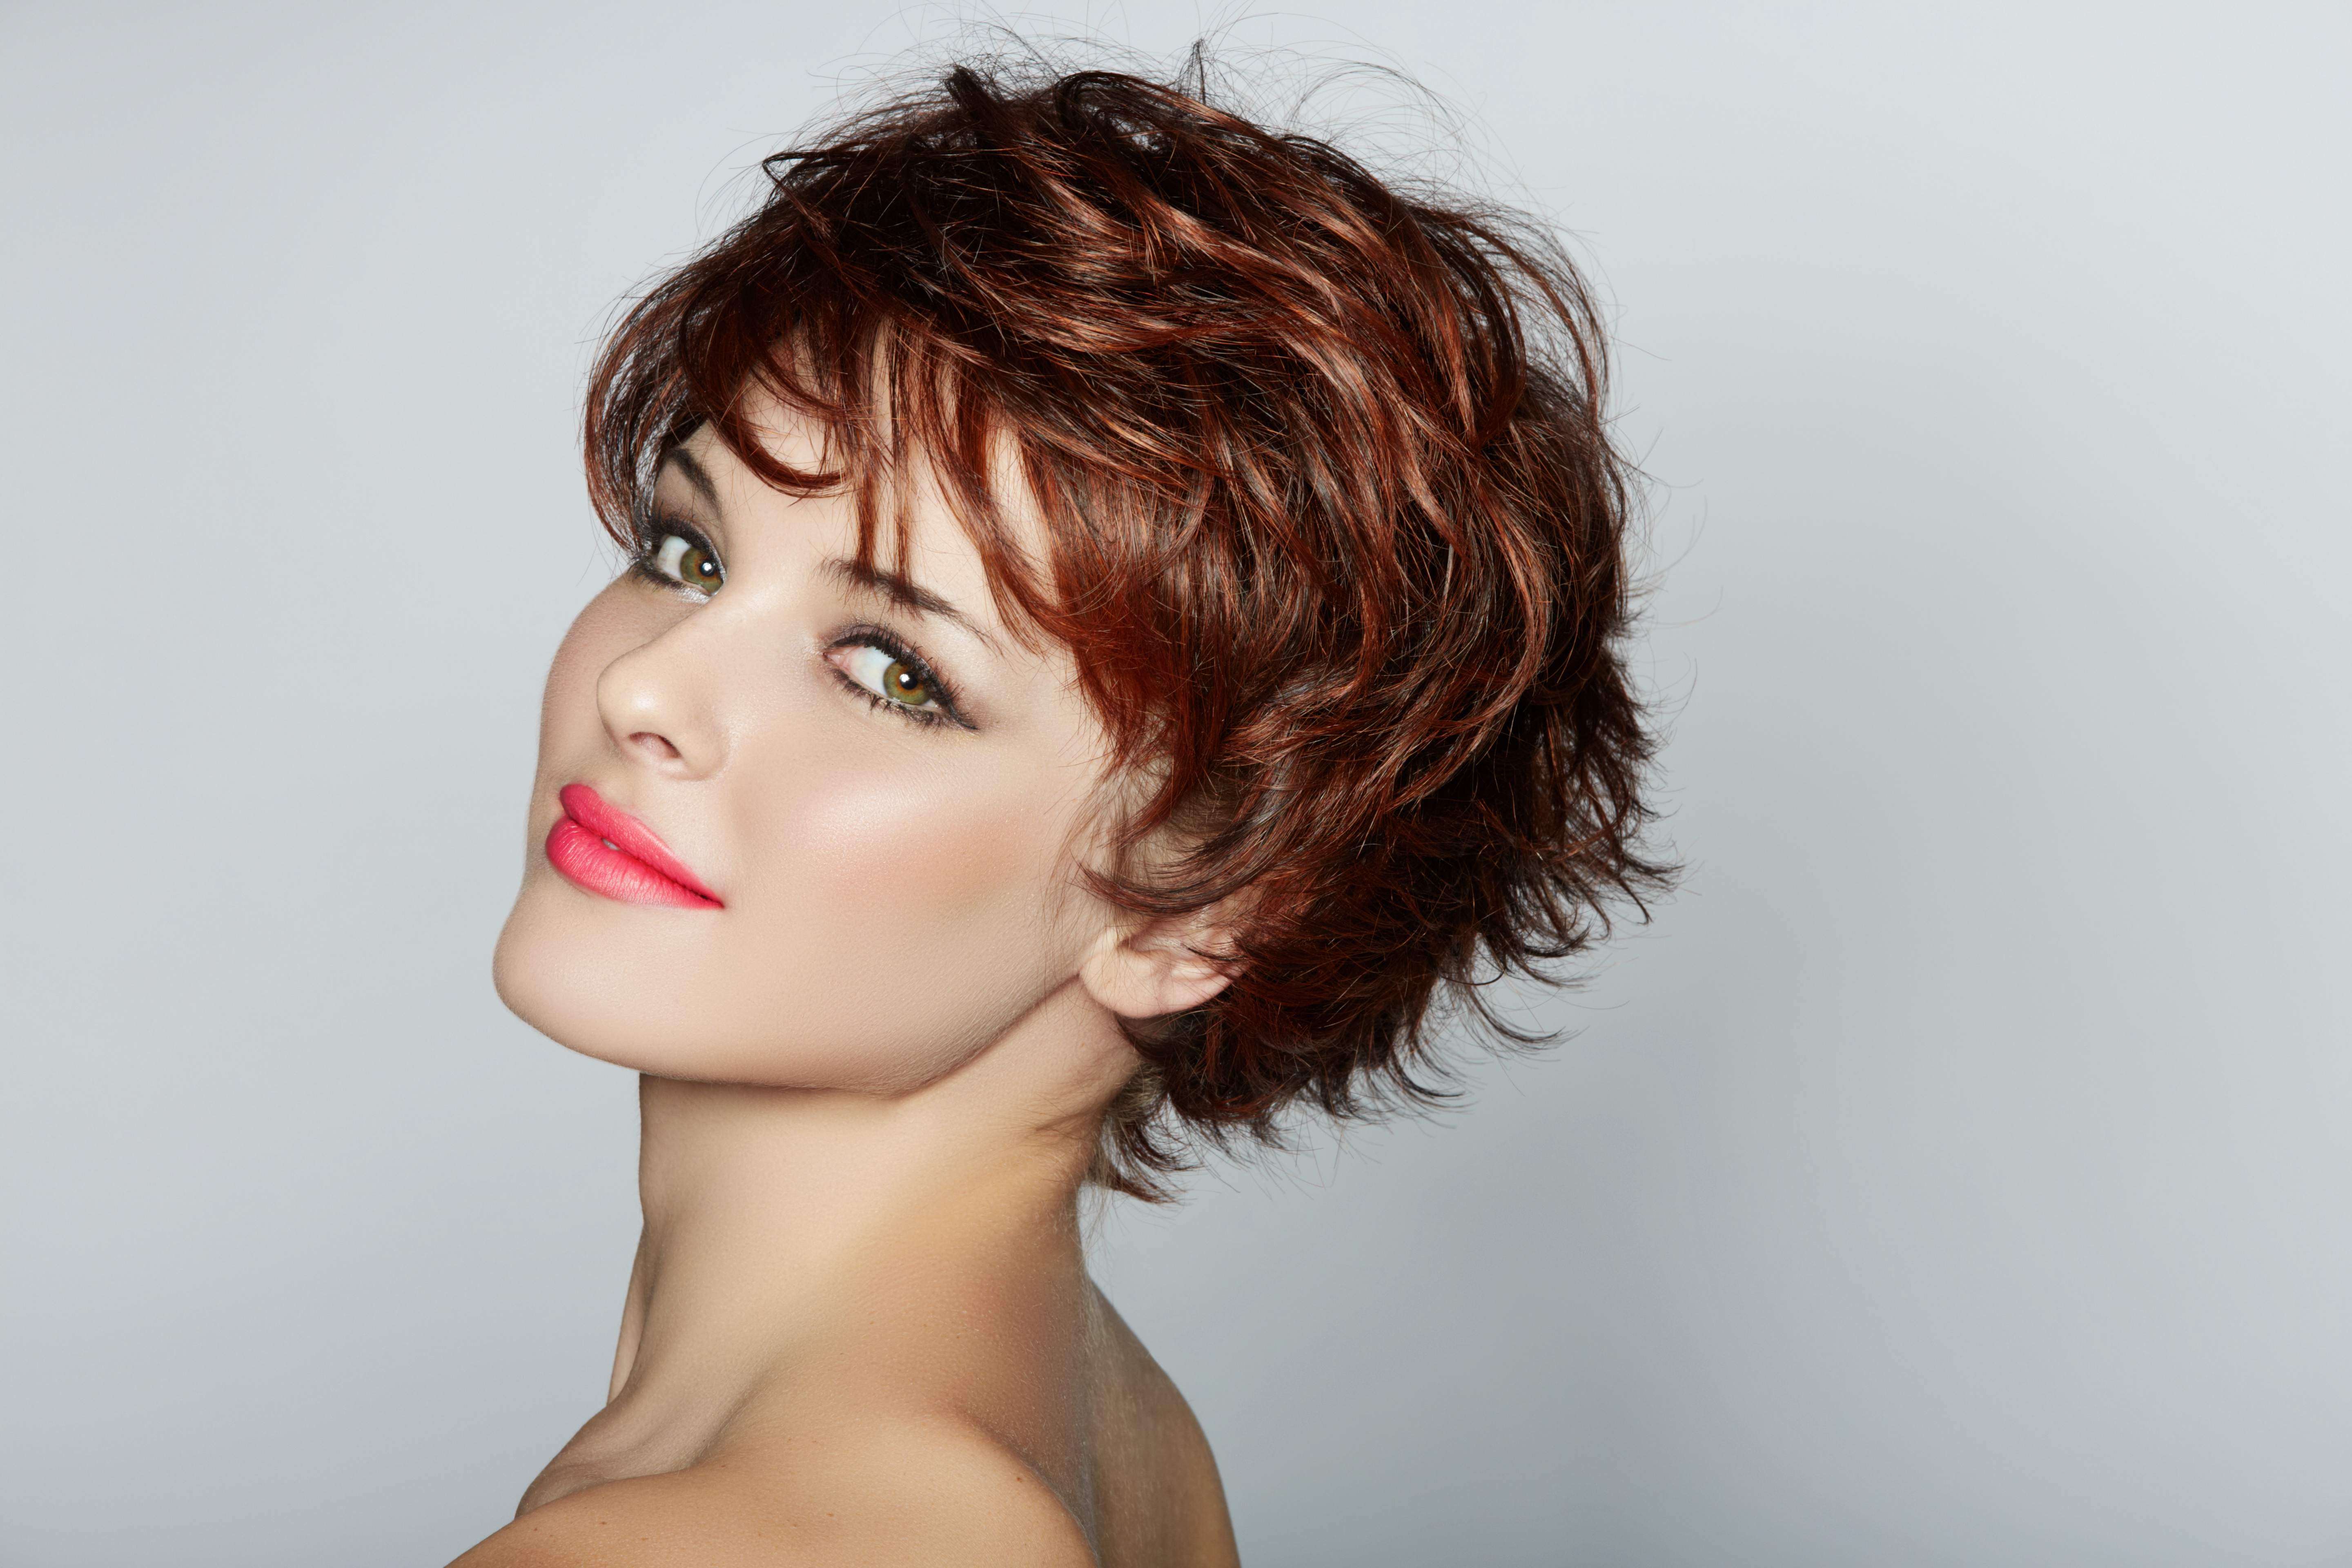 30 Beautiful Short Haircuts For Curly Frizzy Hair | Unique Kitchen With Regard To Short Haircuts For Curly Fine Hair (View 4 of 25)